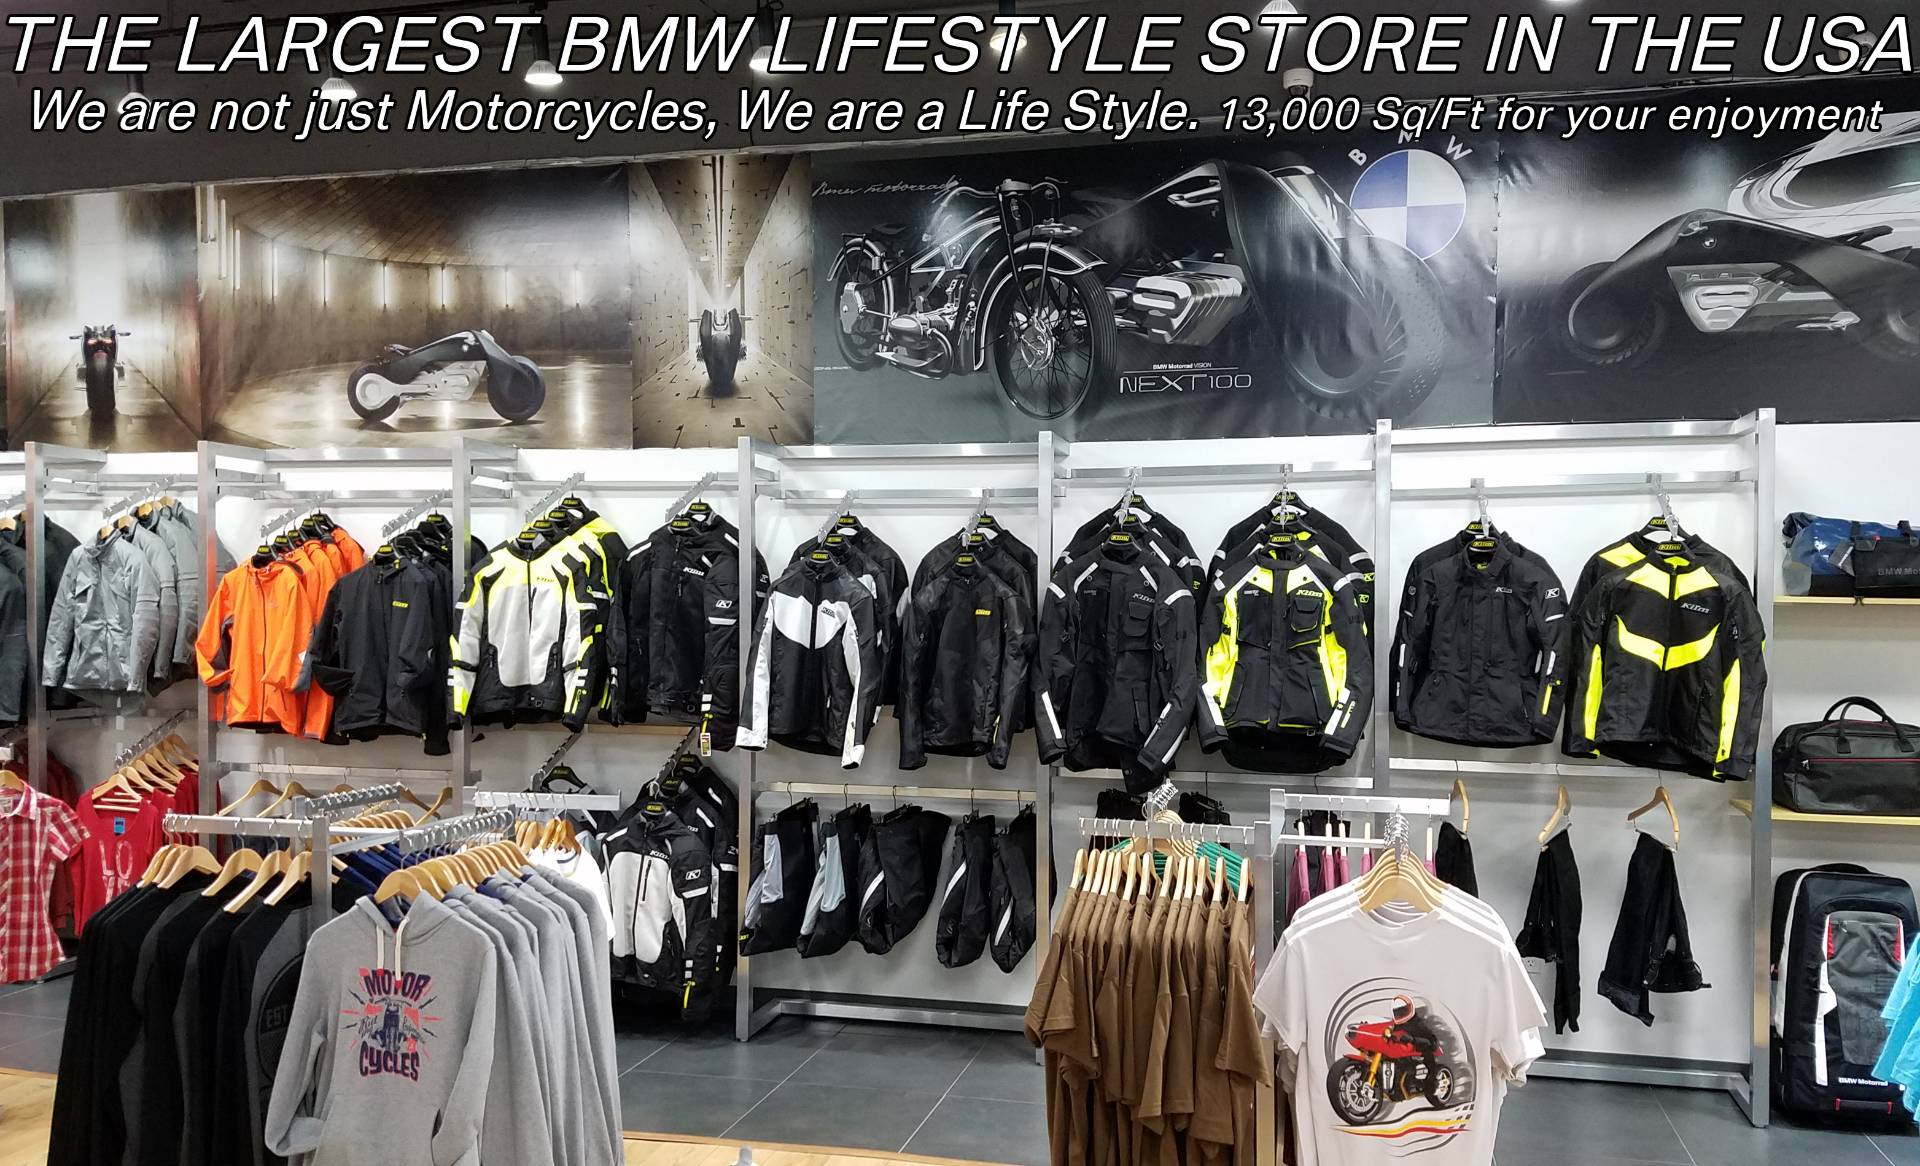 Used 2017 BMW R nine T For Sale, Pre owned BMW R nineT For Sale, BMW Motorcycle RnineT, BMW Motorcycles of Miami, Motorcycles of Miami, Motorcycles Miami - Photo 45